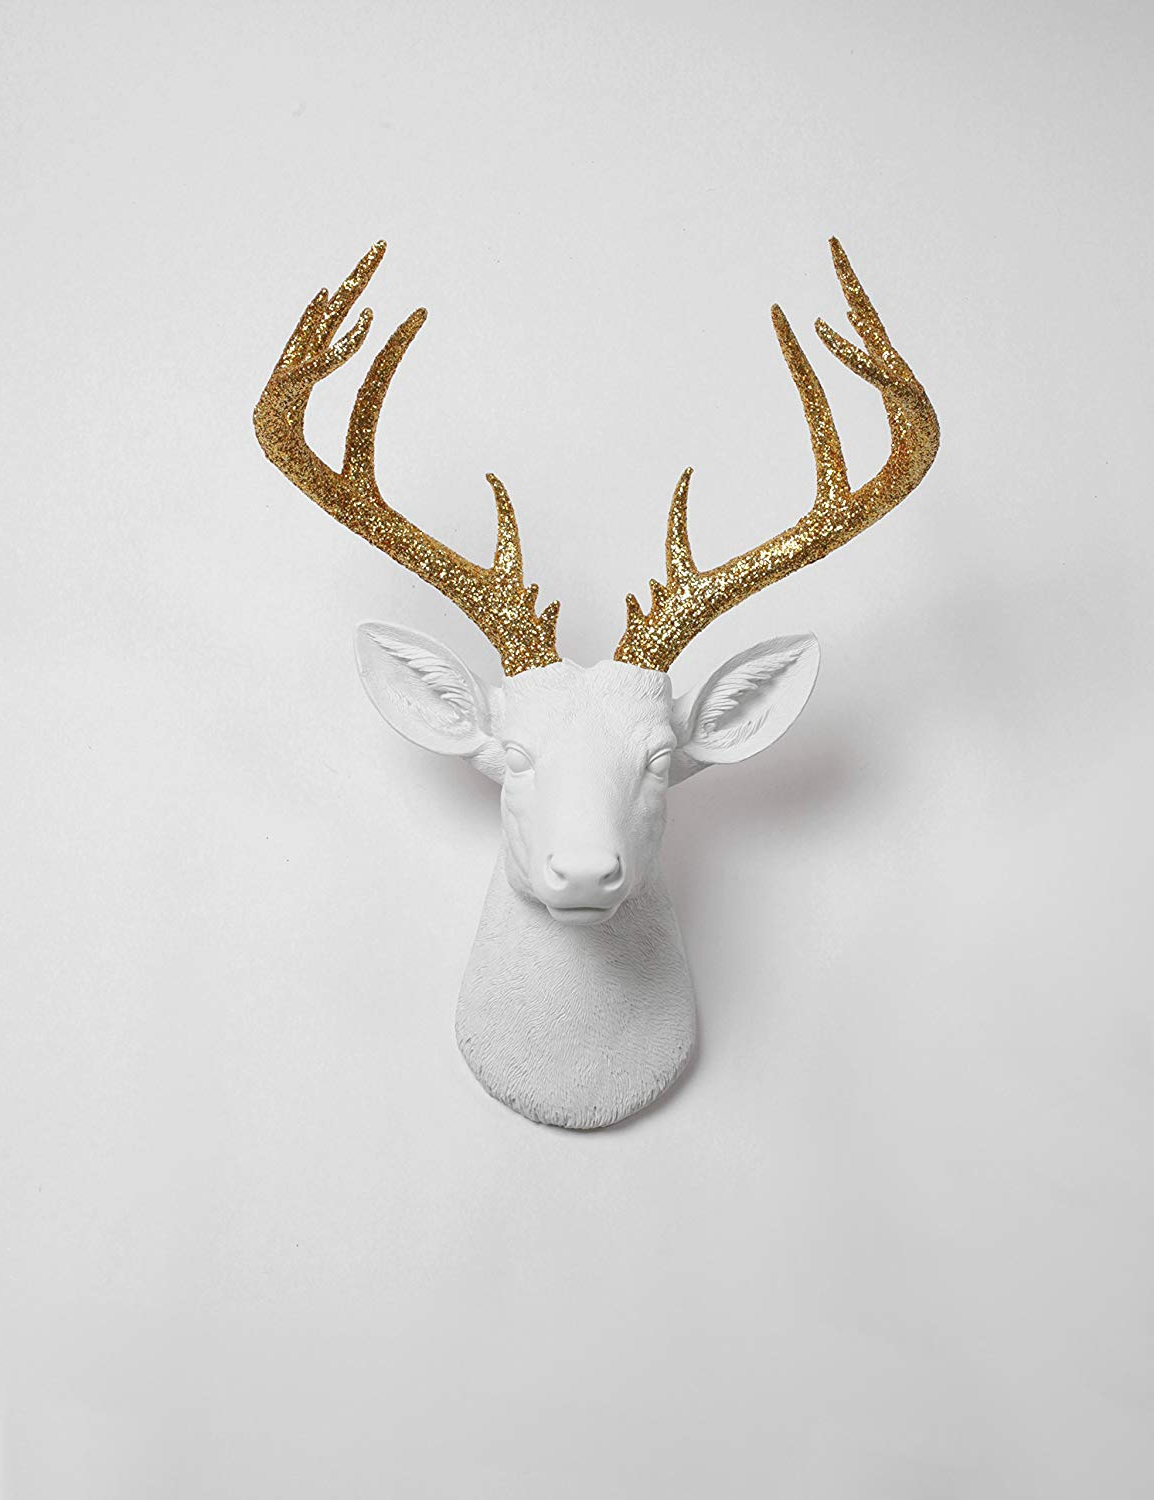 Most Popular Large Deer Head Faux Taxidermy Wall Decor With Amazon: White Faux Taxidermy X Large Deer Head Wall Mount, The (Gallery 3 of 20)